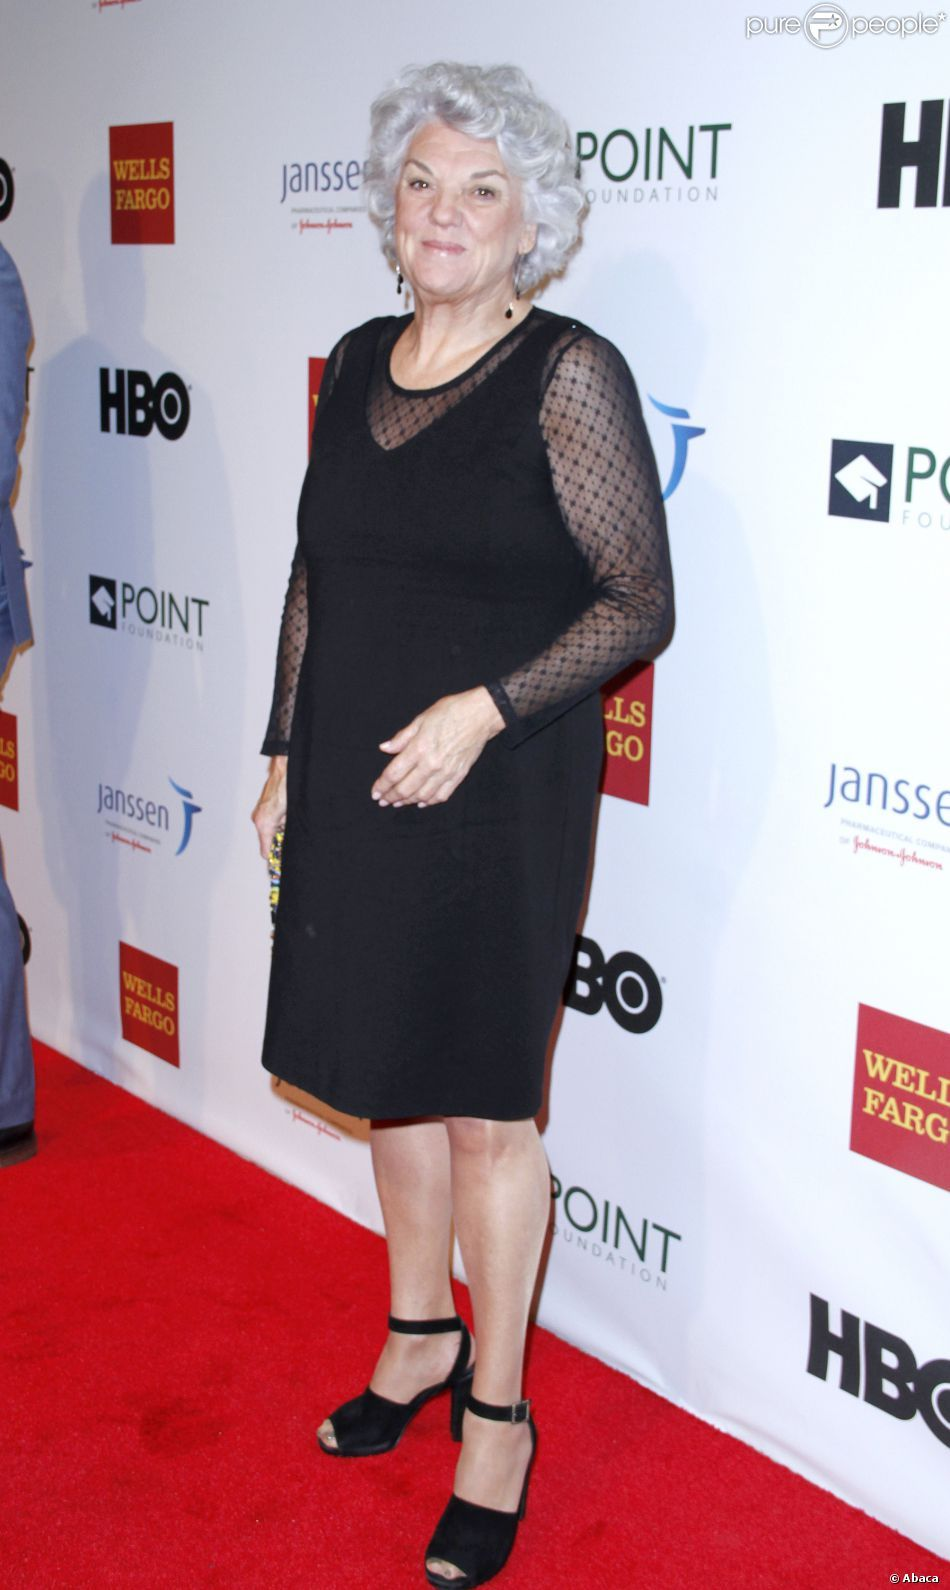 1434969-tyne-daly-arrives-for-the-point-950x0-1.jpg (950×1590)